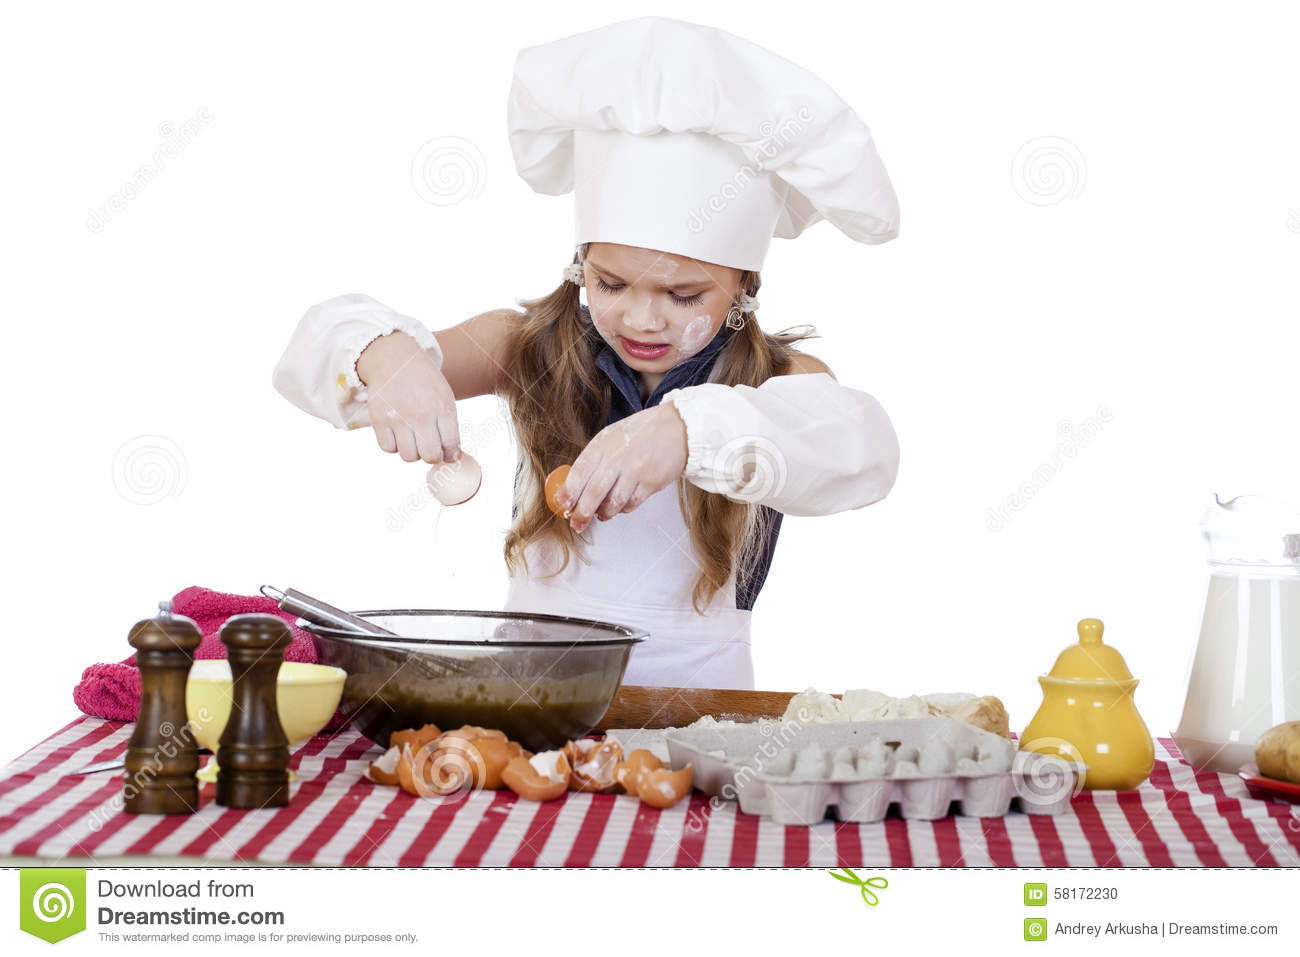 White apron girl - Little Cook Girl In A White Apron Breaks Eggs In A Deep Dish